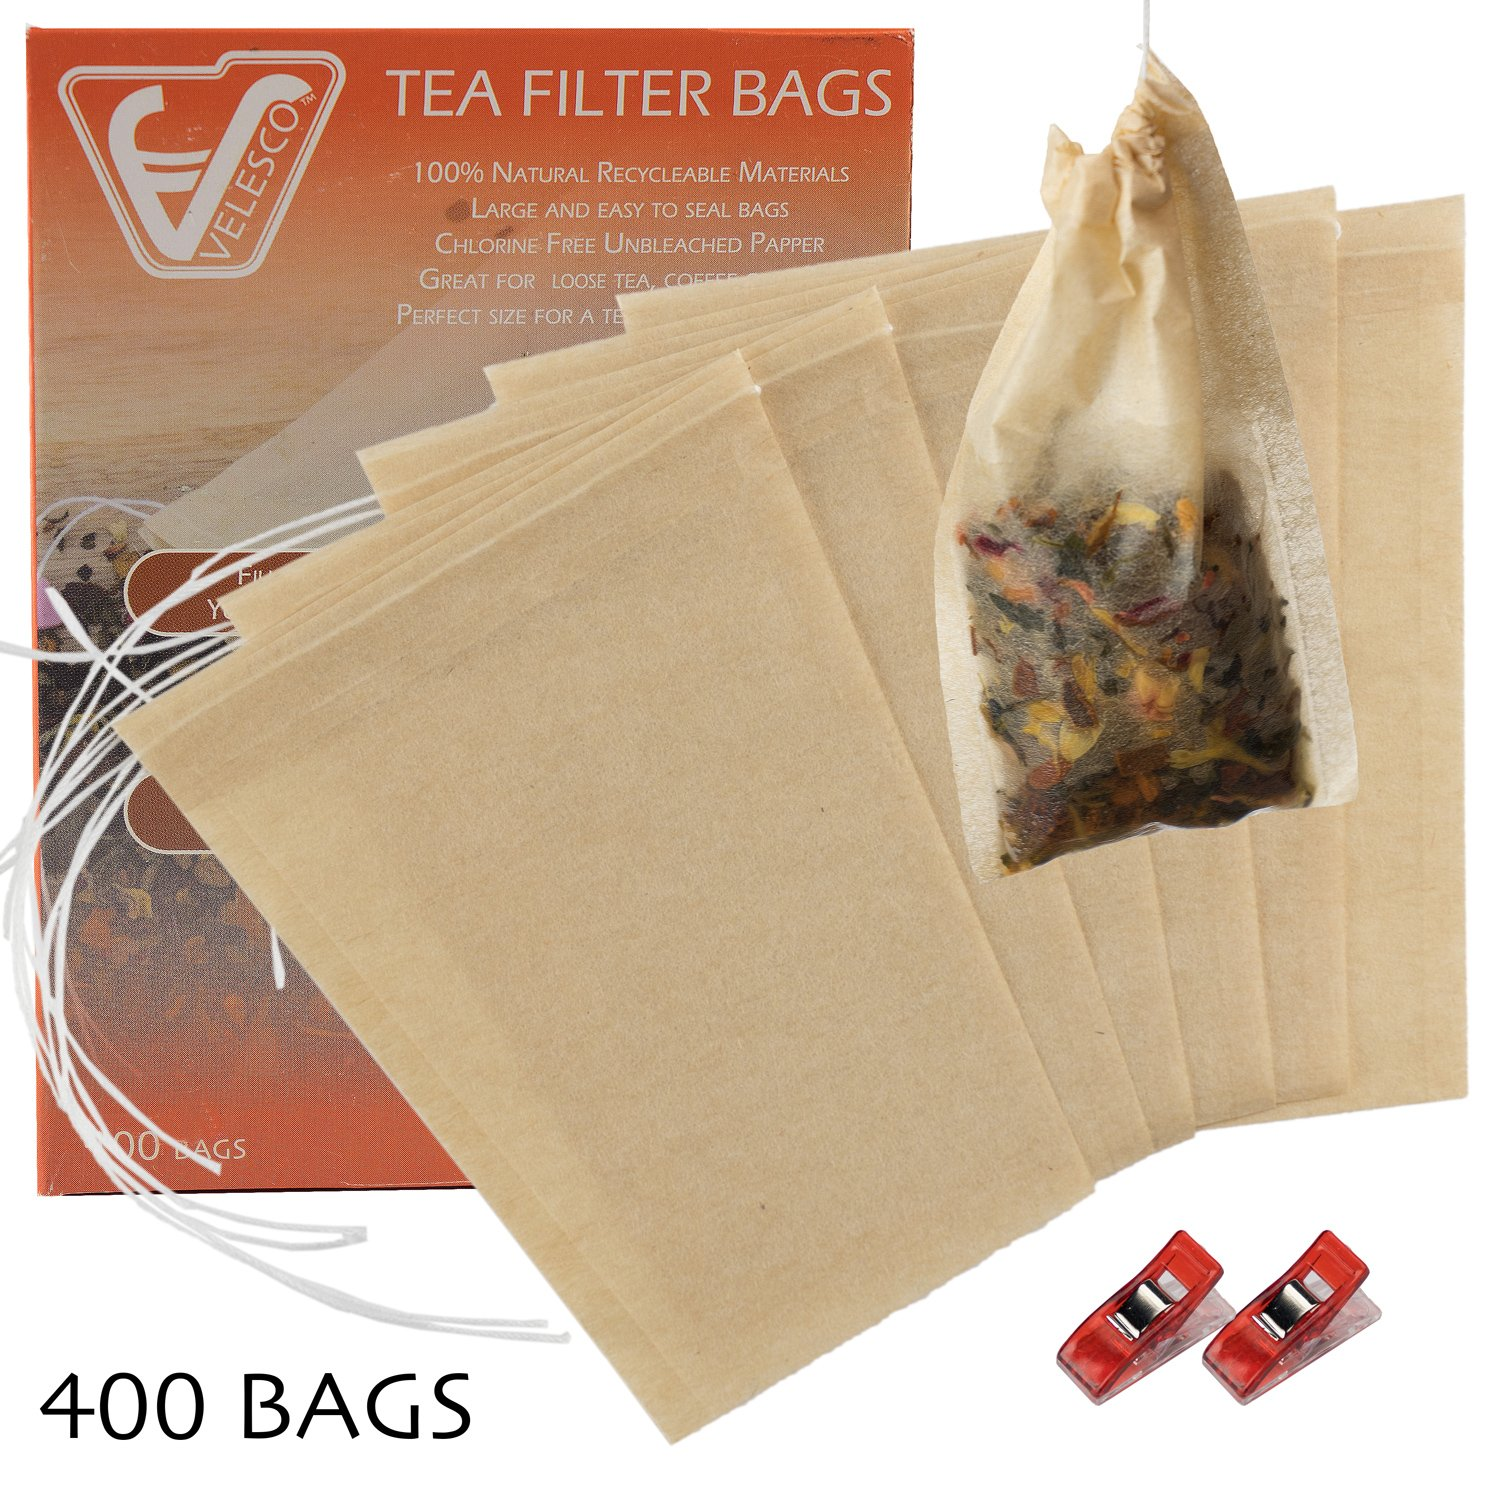 Velesco Tea Filter Bags Disposable Tea Infuser with Drawstring for Loose Leaf Tea with 100% Natural Sustainable Unbleached Paper 3 3/4 x 3'' 400pcs